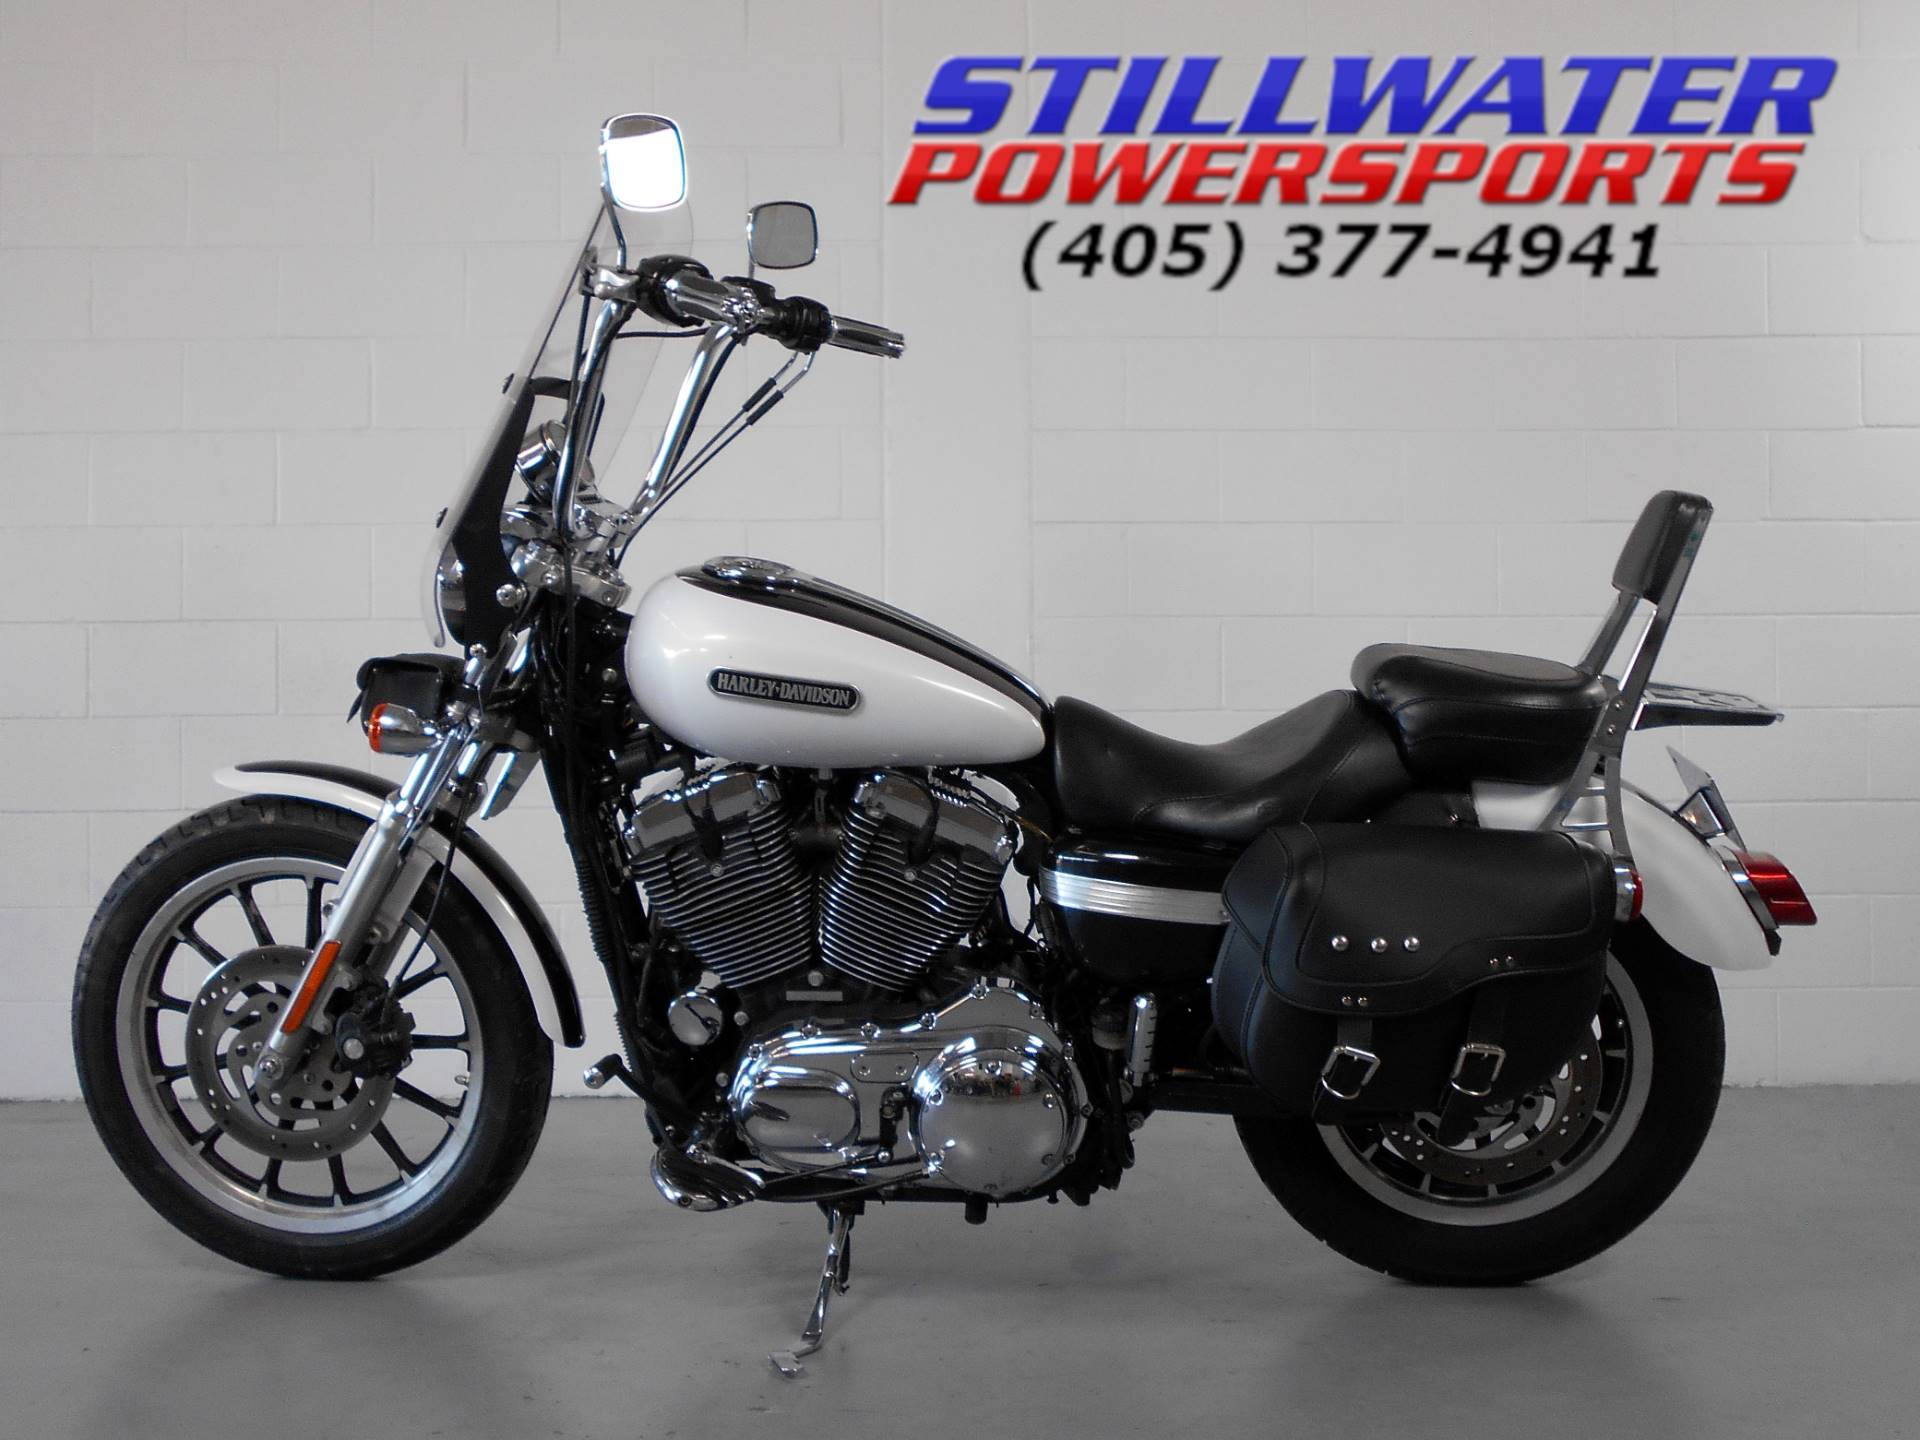 2007 Harley-Davidson Sportster® 1200 Low in Stillwater, Oklahoma - Photo 12